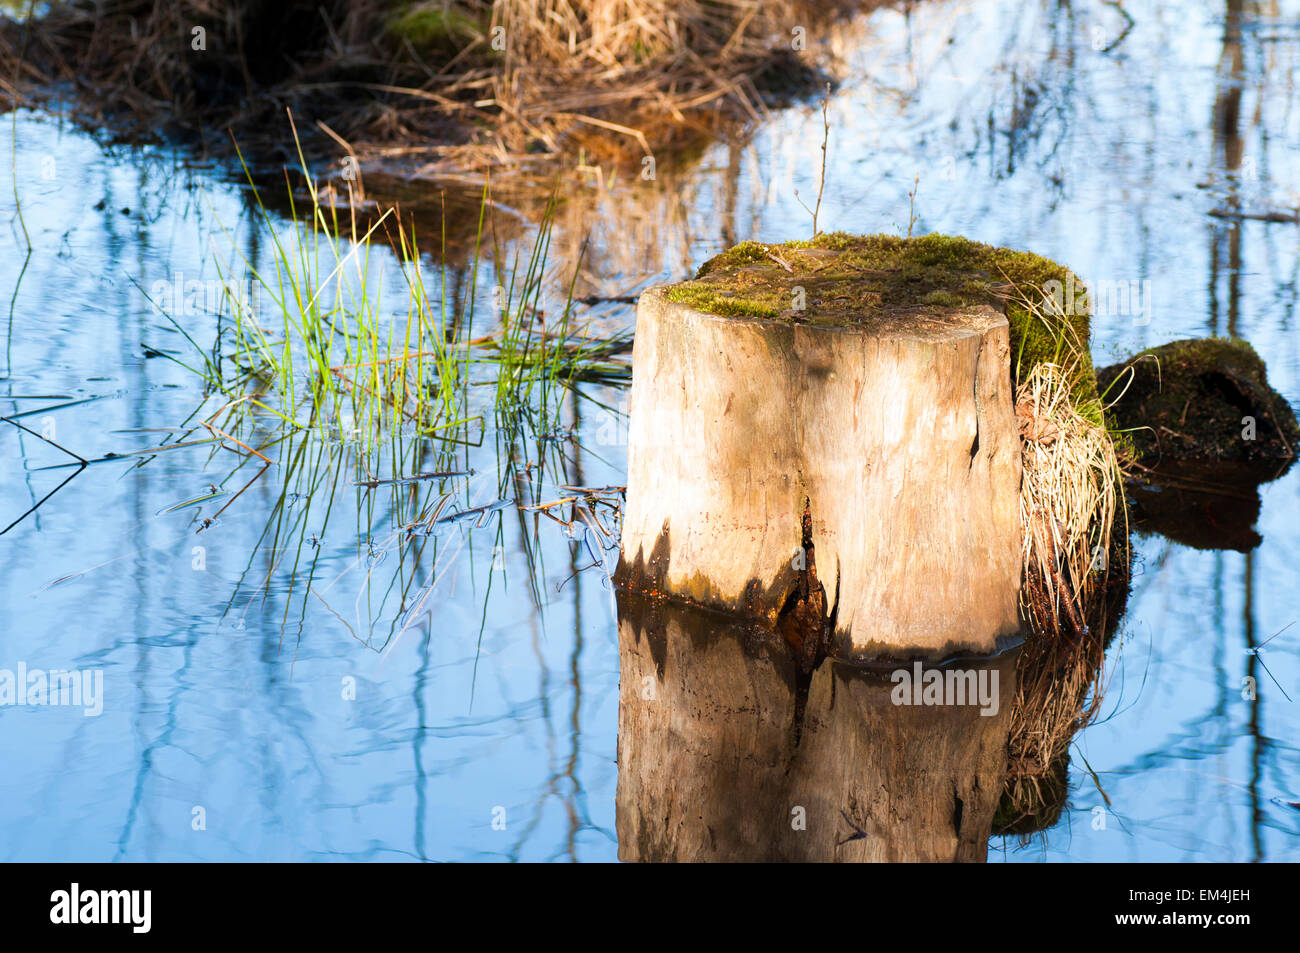 A stump with moss in a lake near the shore on a spring day. - Stock Image